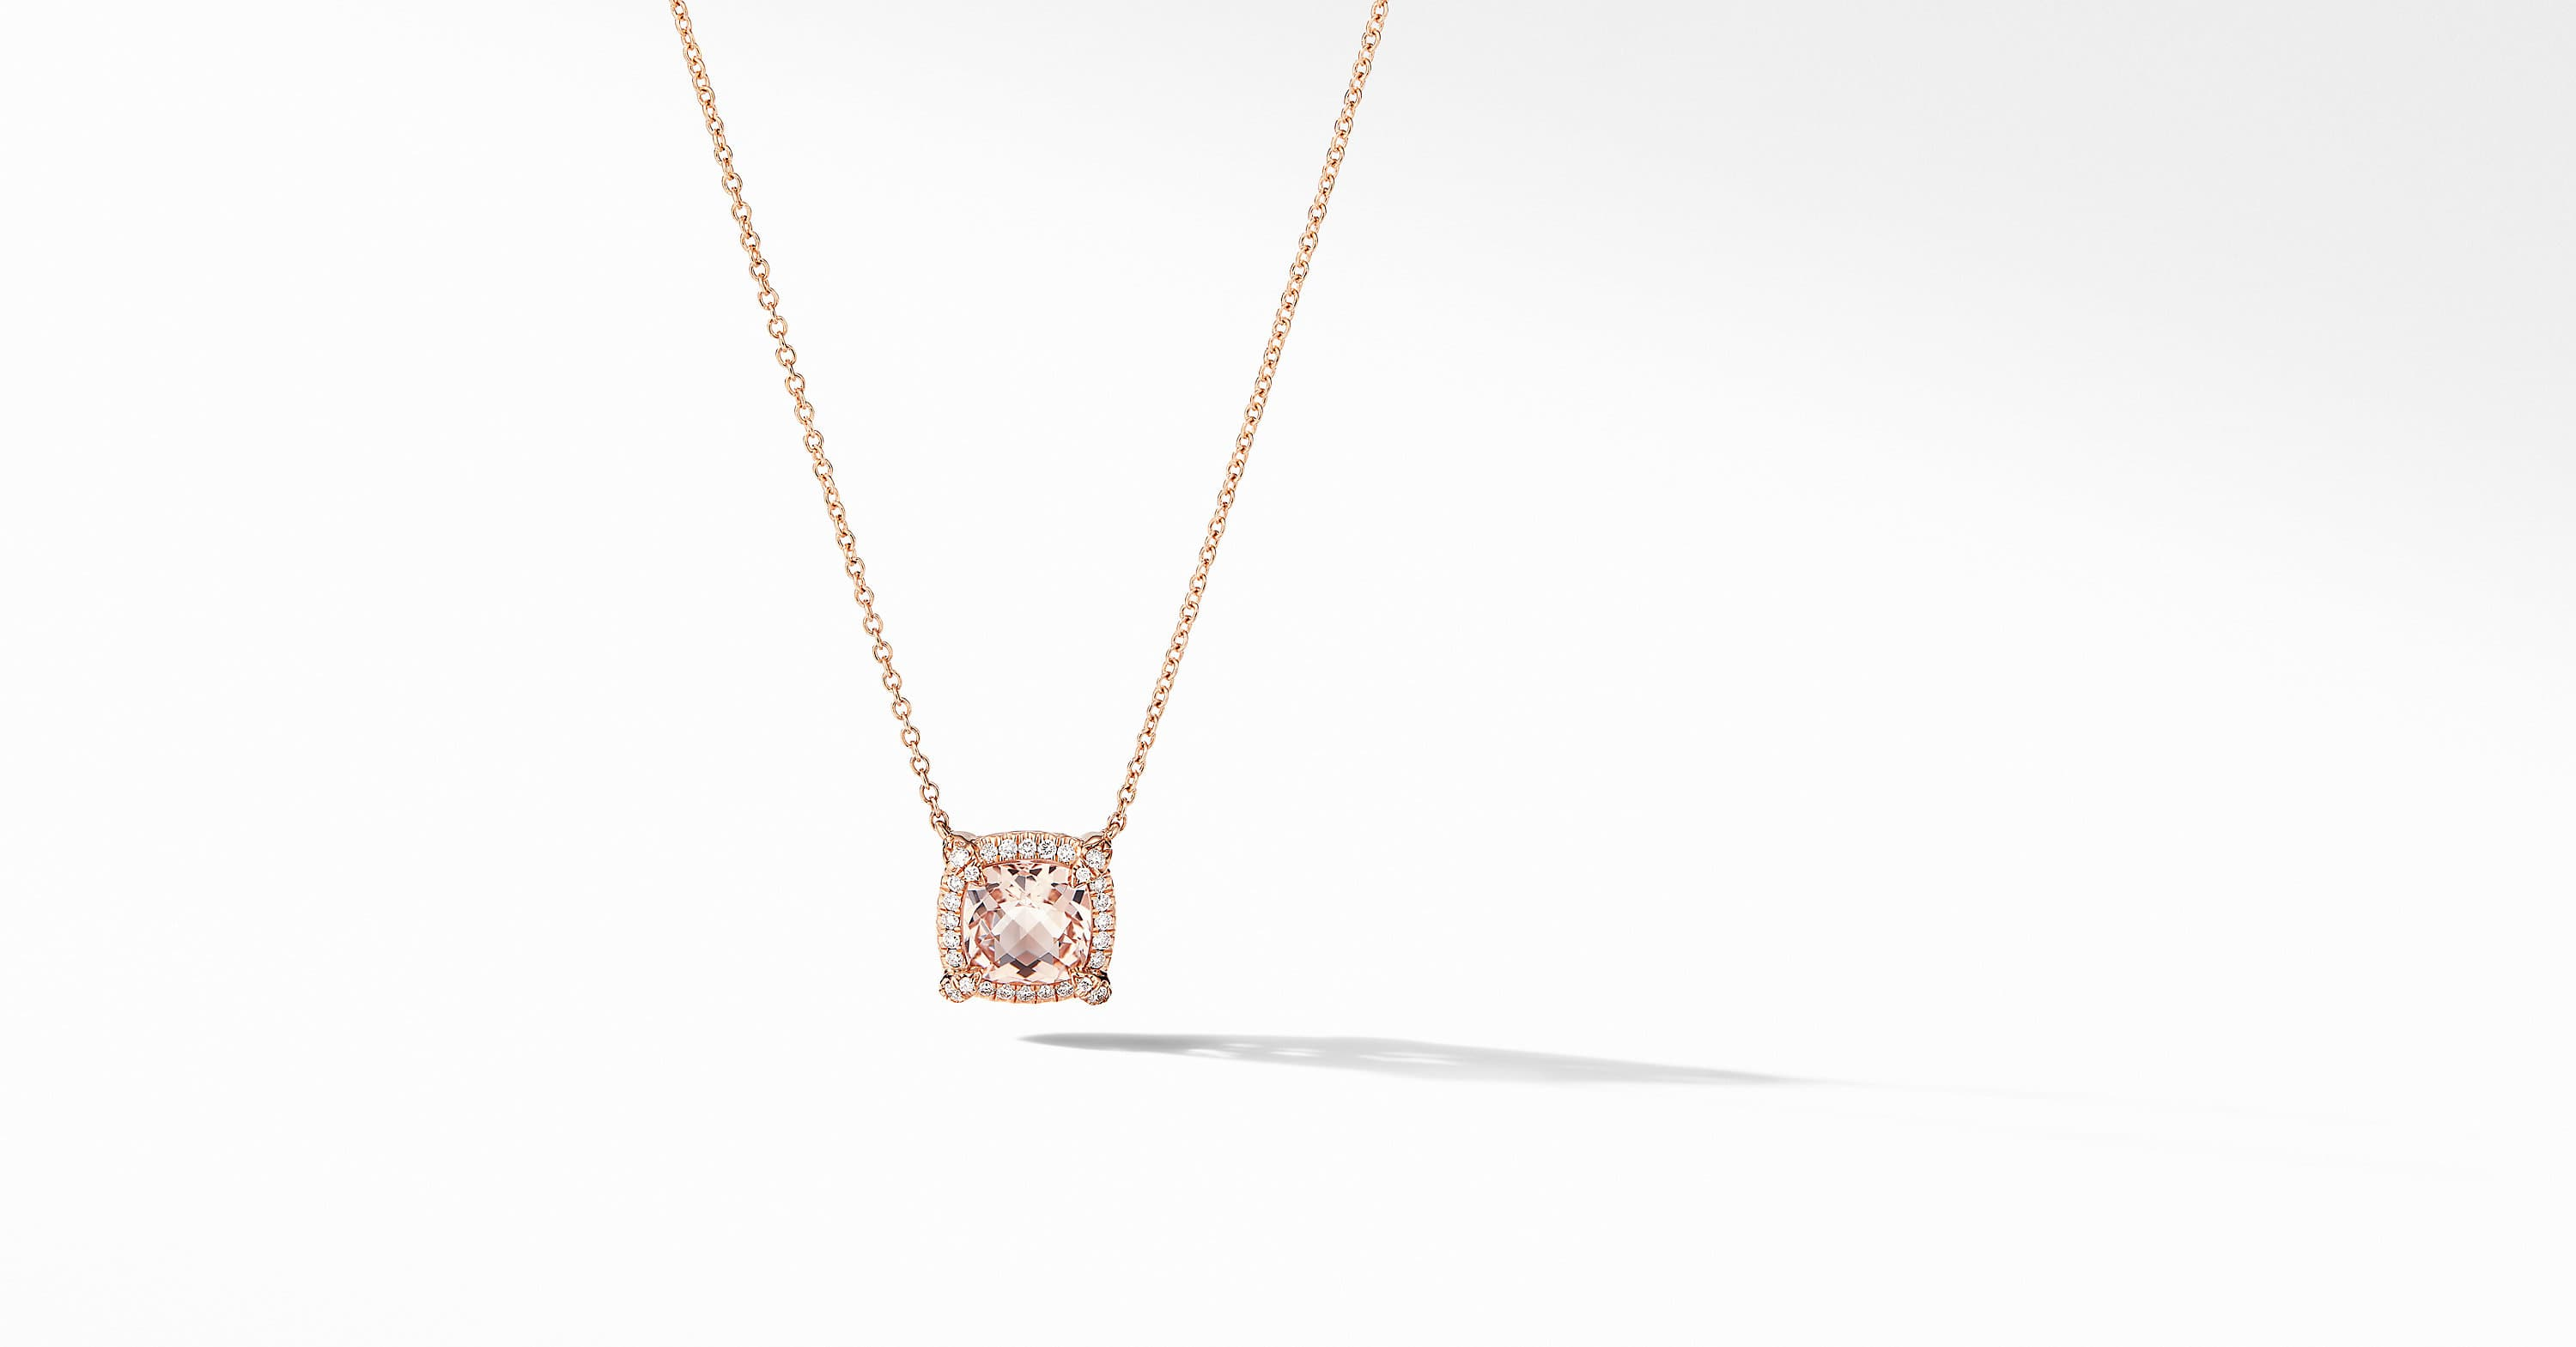 Petite Chatelaine Pavé Bezel Pendant Necklace in 18K Rose Gold, 7mm